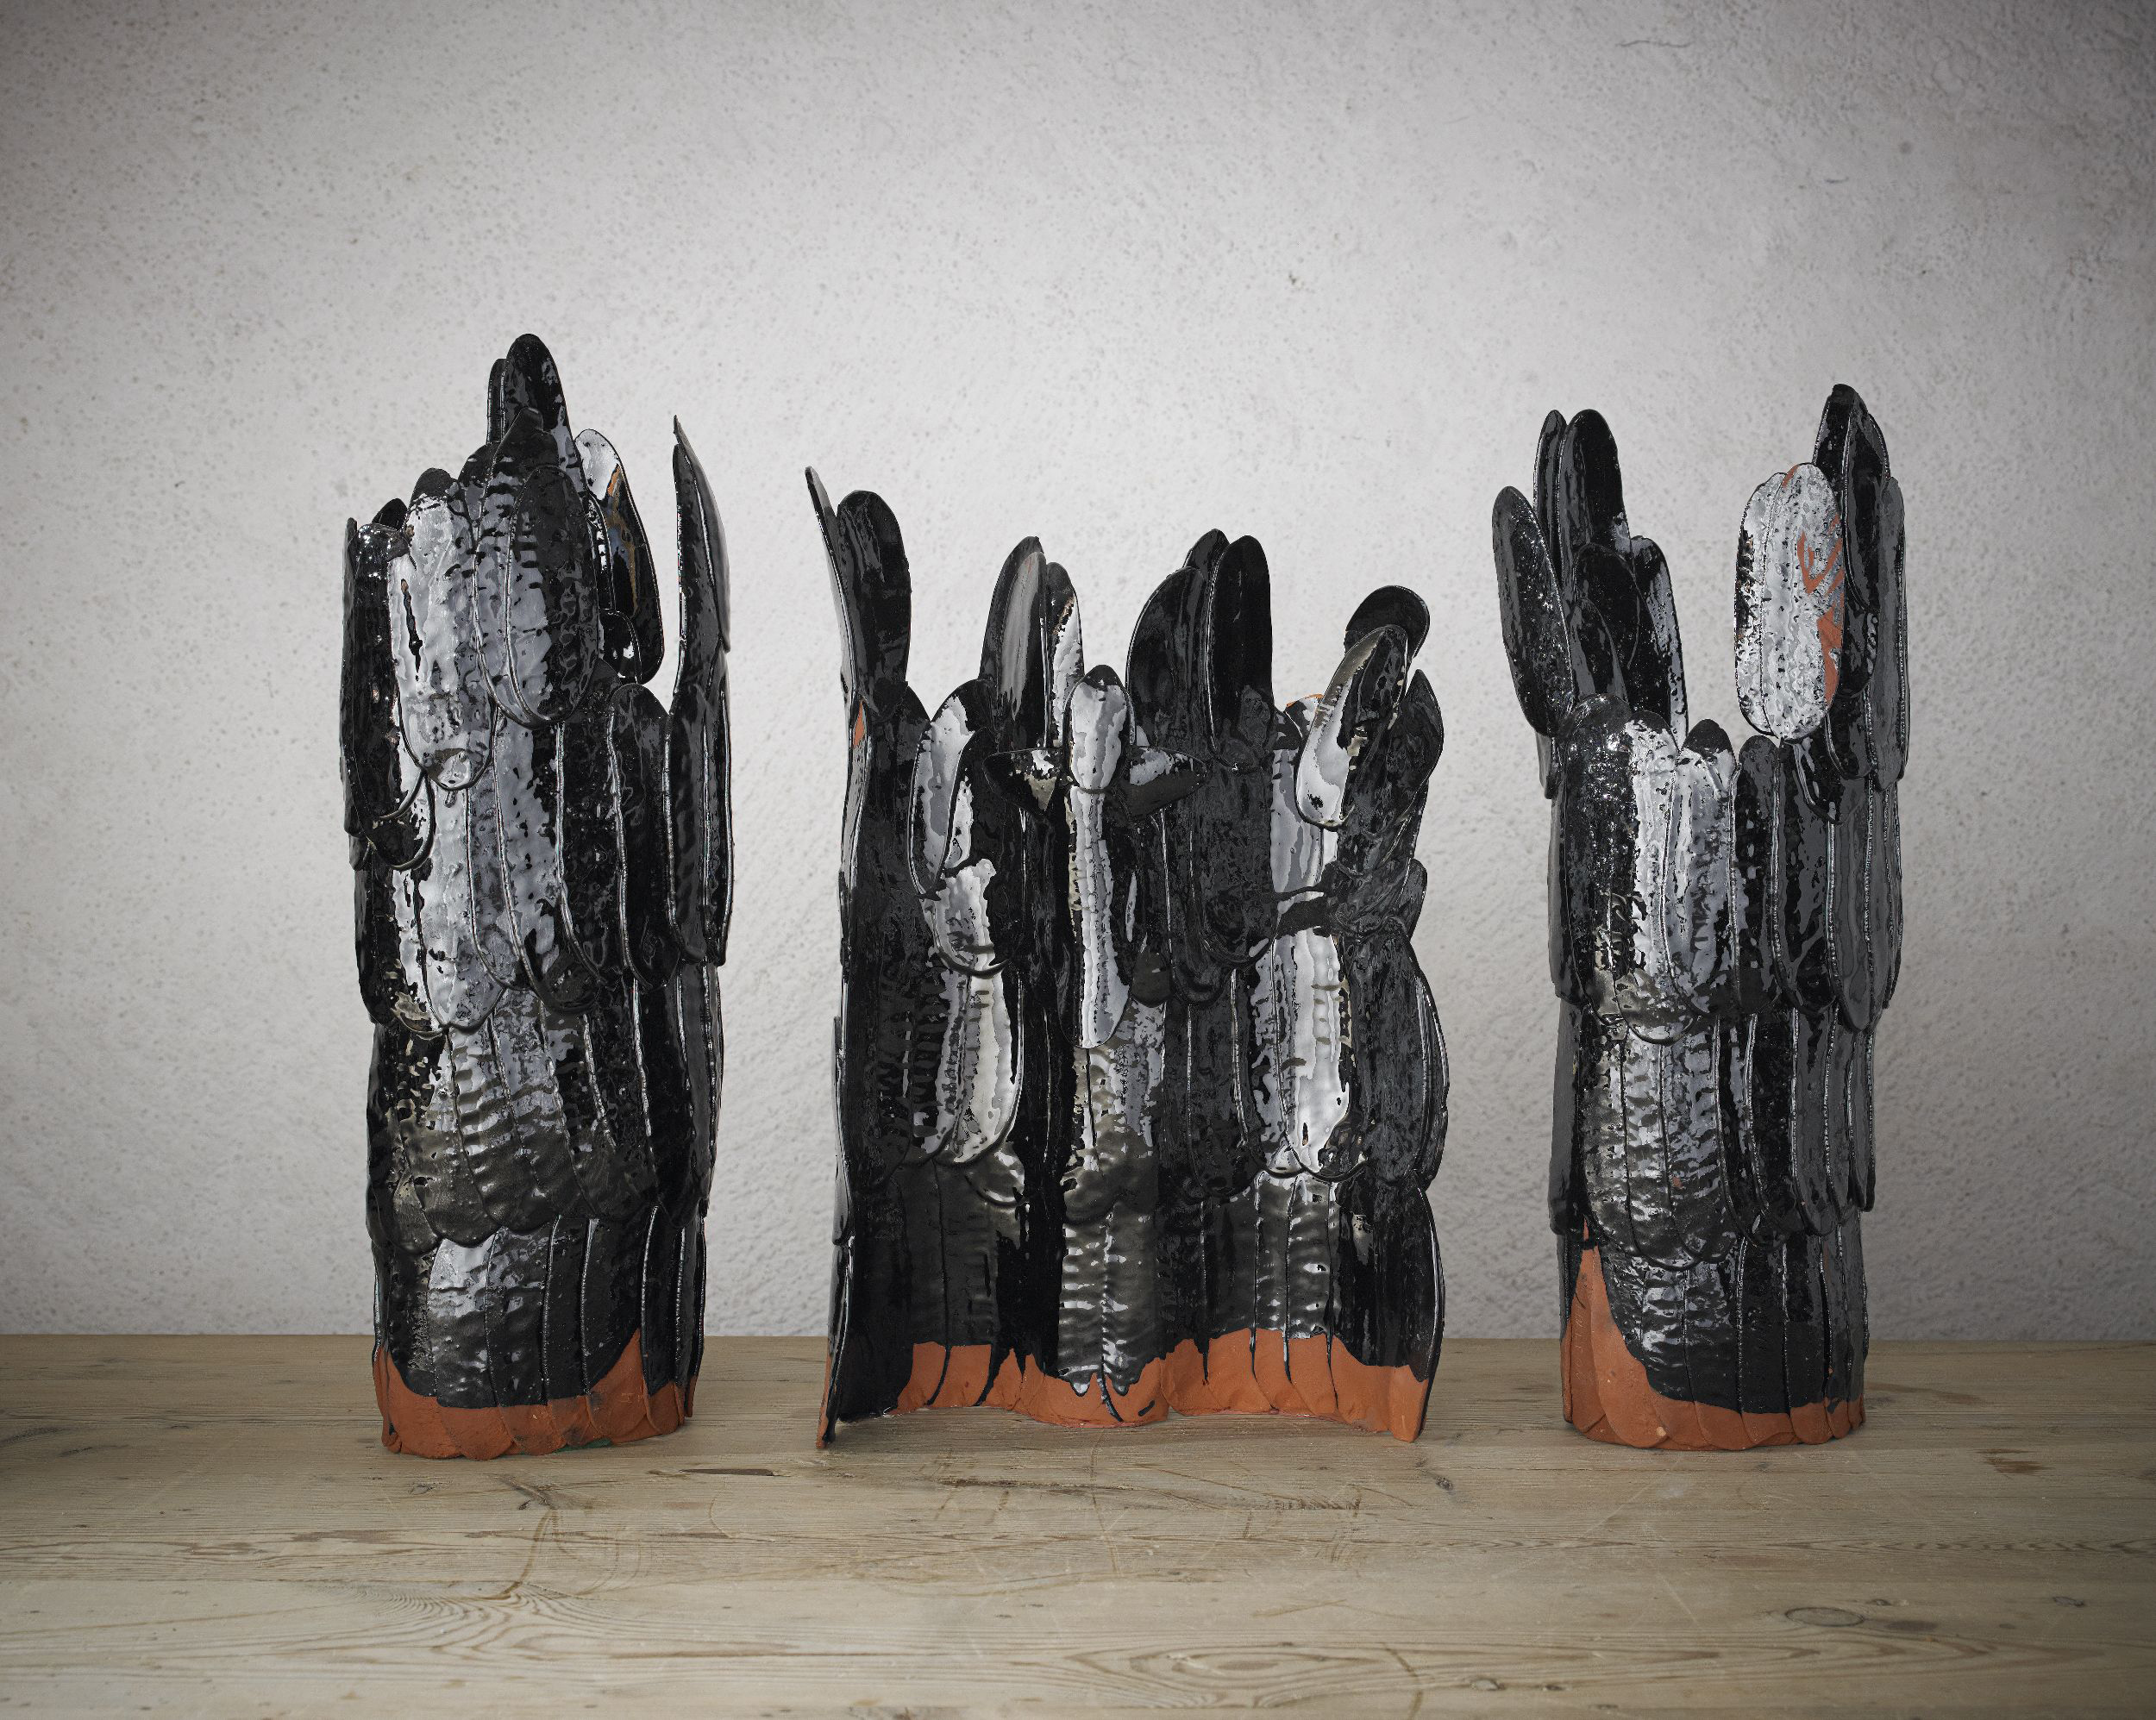 Hertha Hillfon. Friday/Calvary, 1963. Earthenware with black glaze,  19, 21, and 22 in. tall.